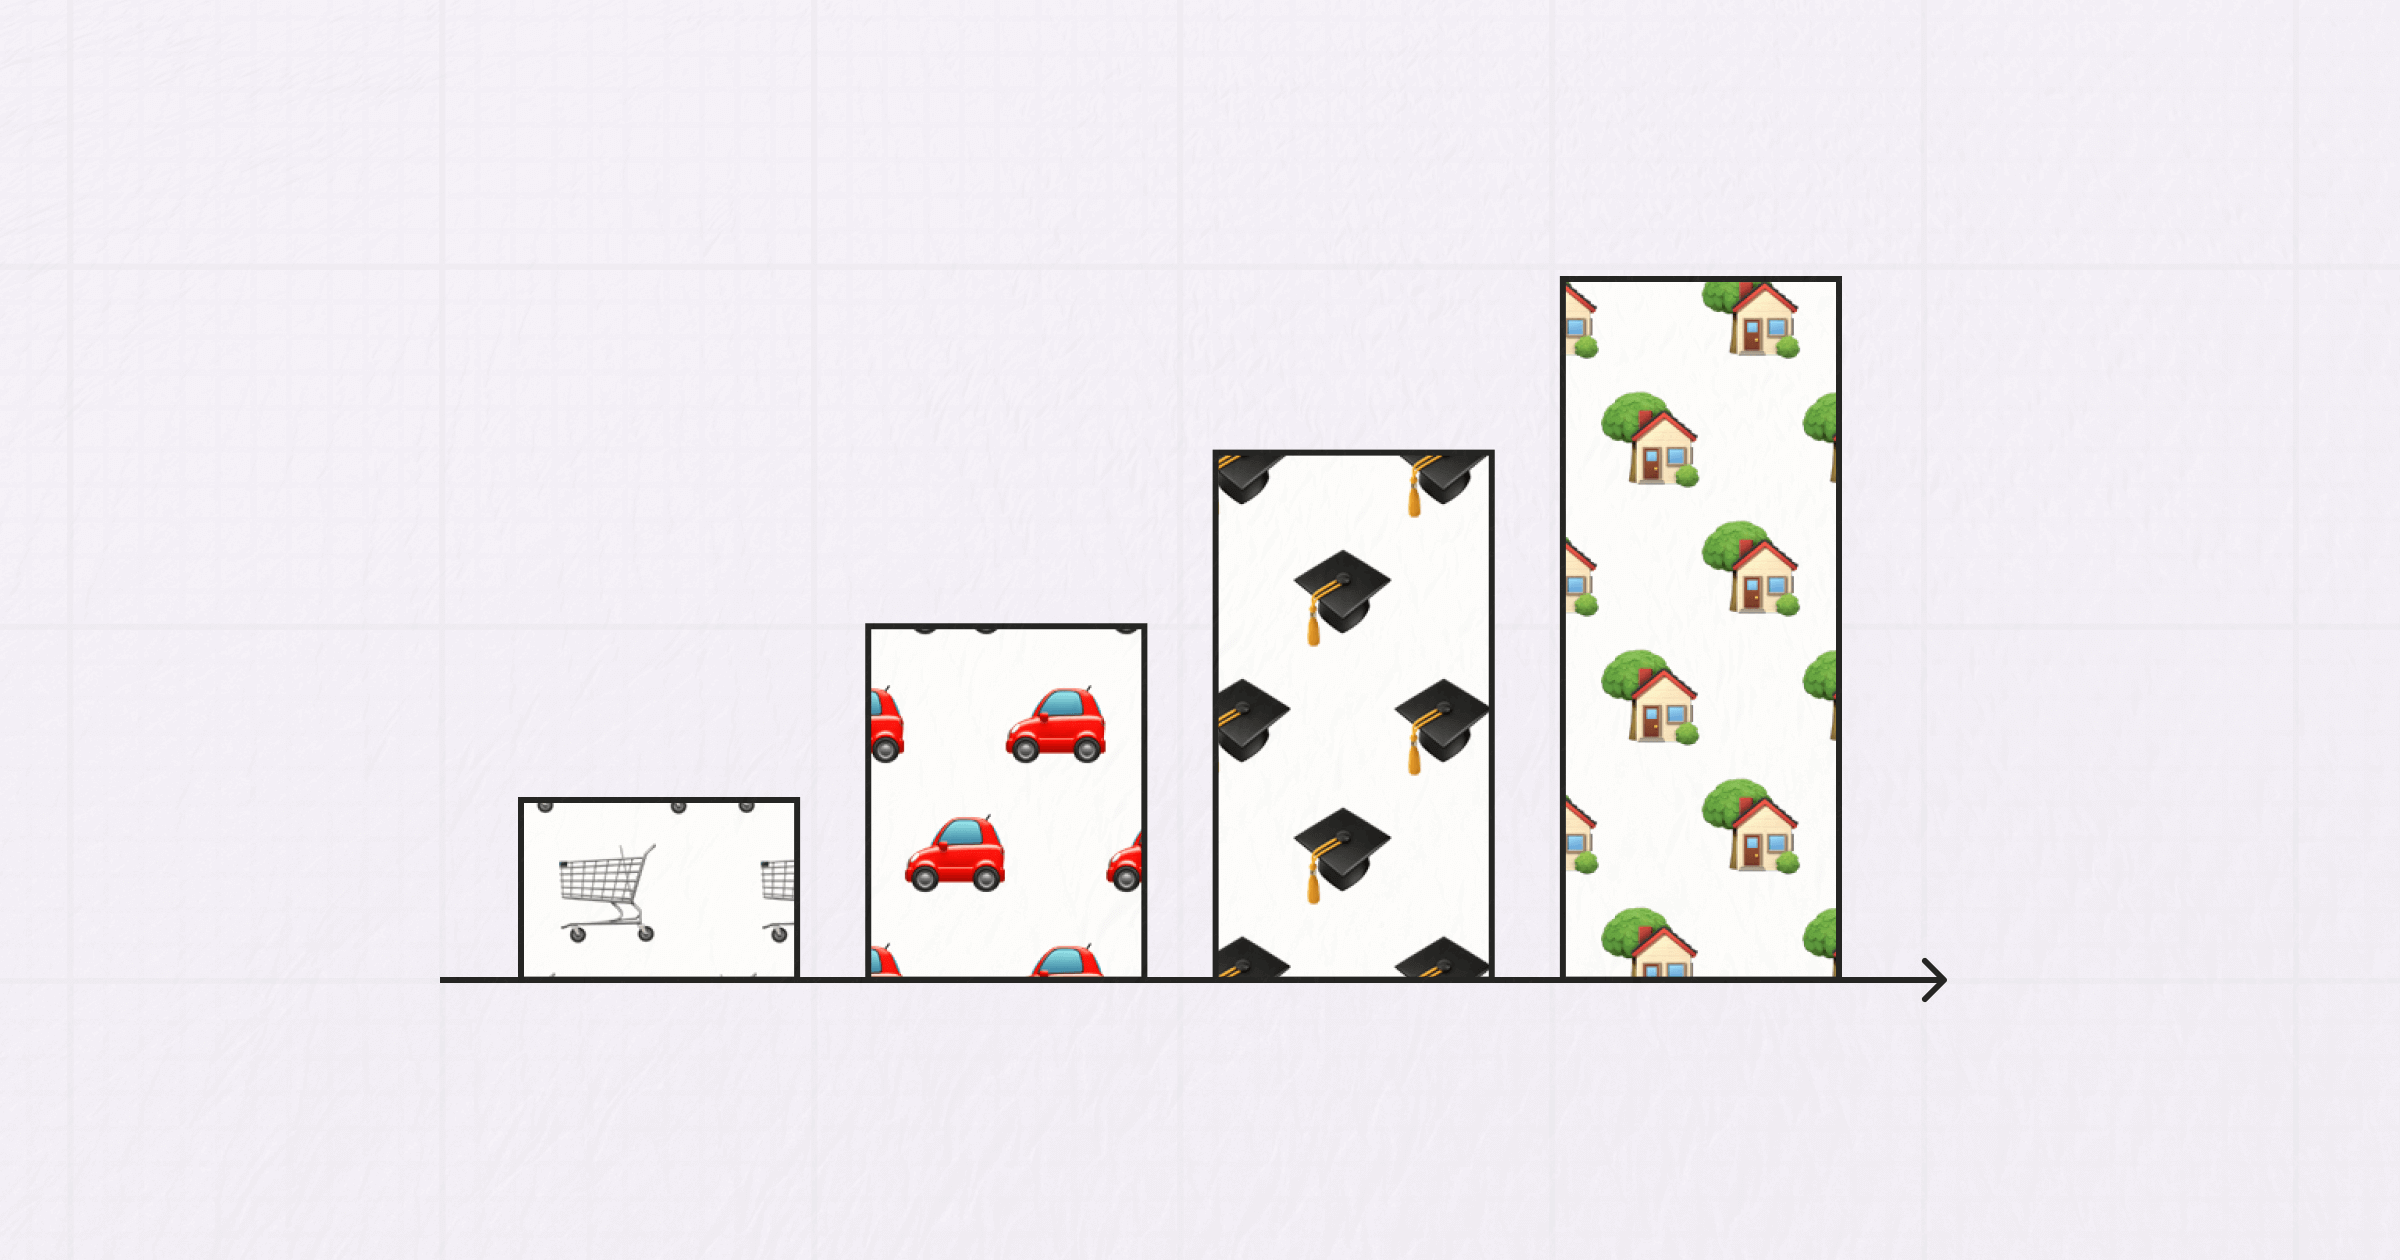 A bar graph with the bars growing taller from left to right. The bars are filled with shopping carts, cars, graduation caps, and houses.